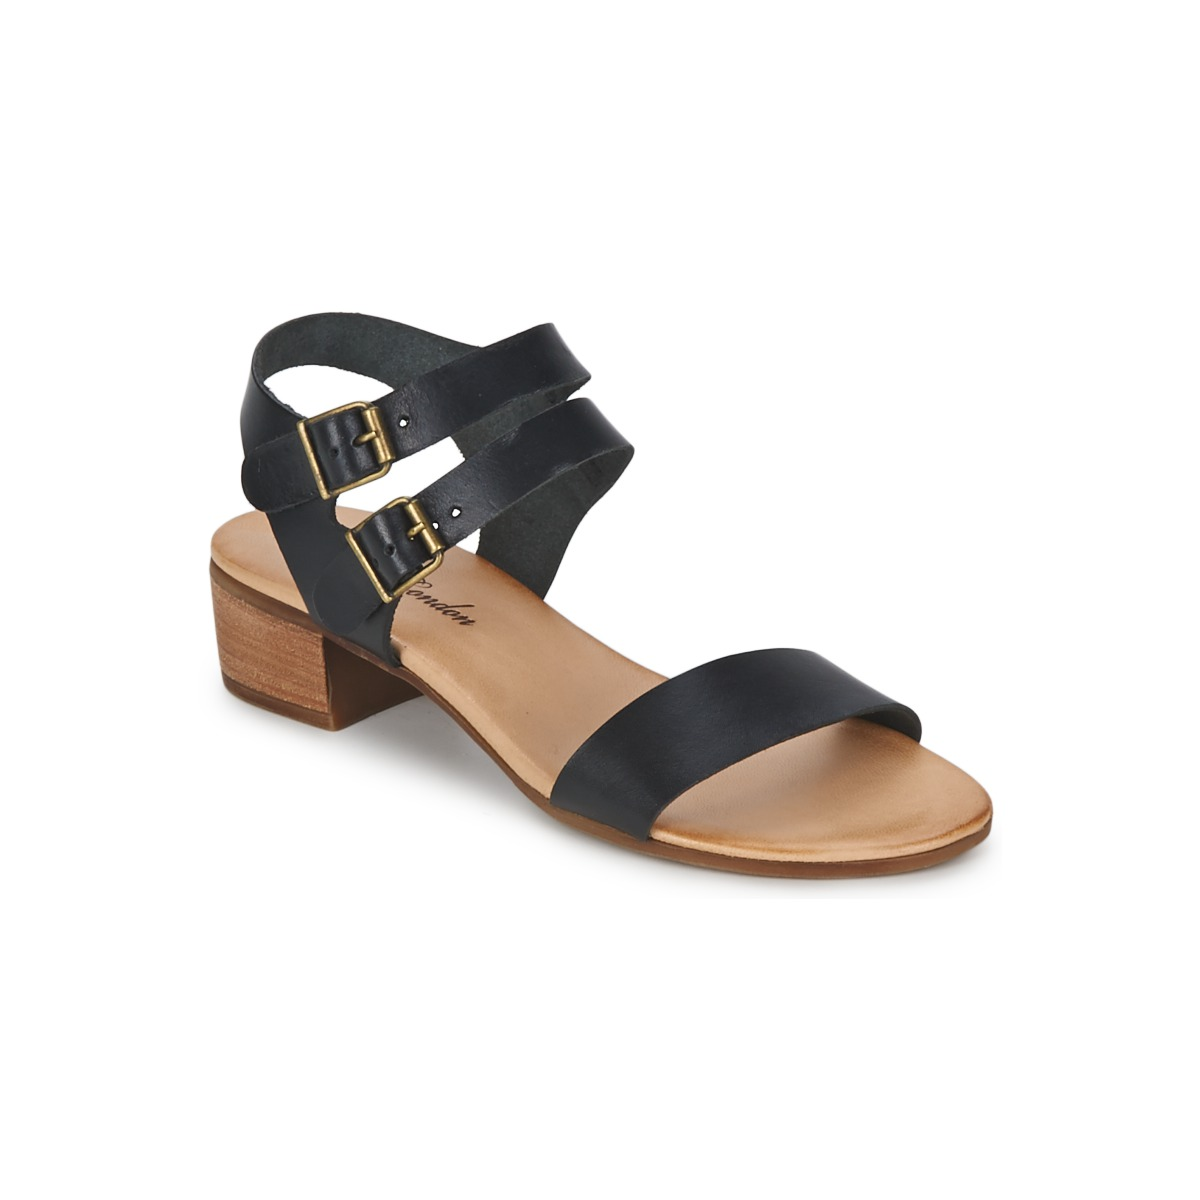 betty london simple block heel sandal